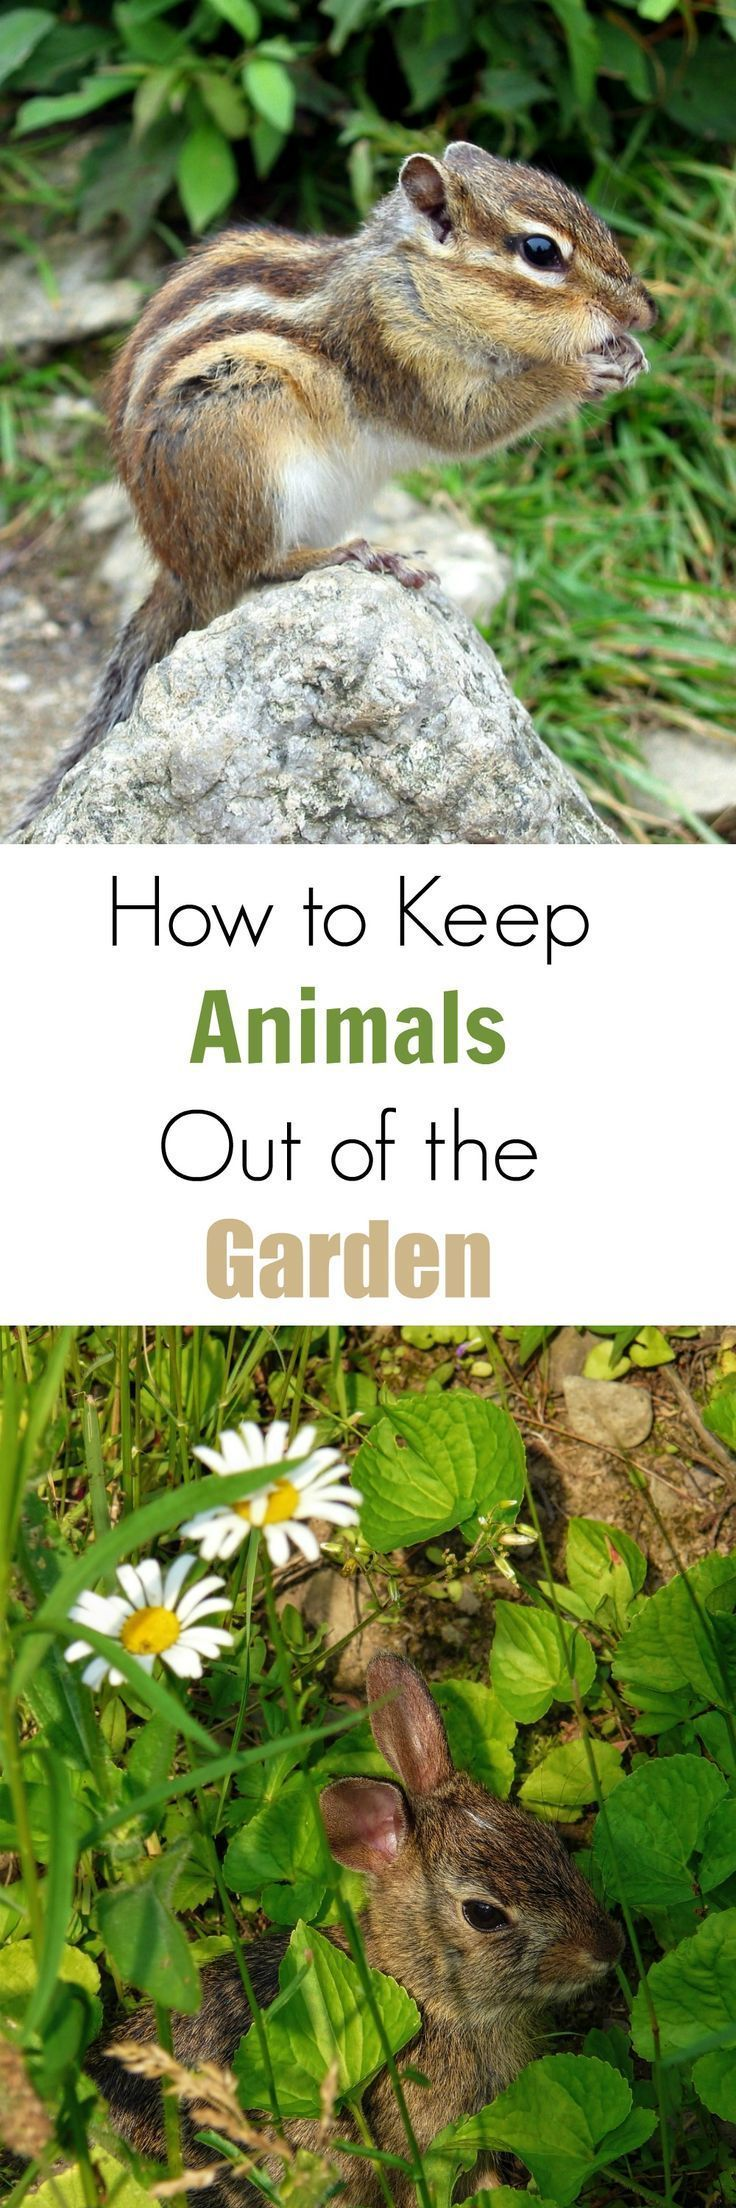 how to keep animals out of the garden - How To Keep Animals Out Of Garden